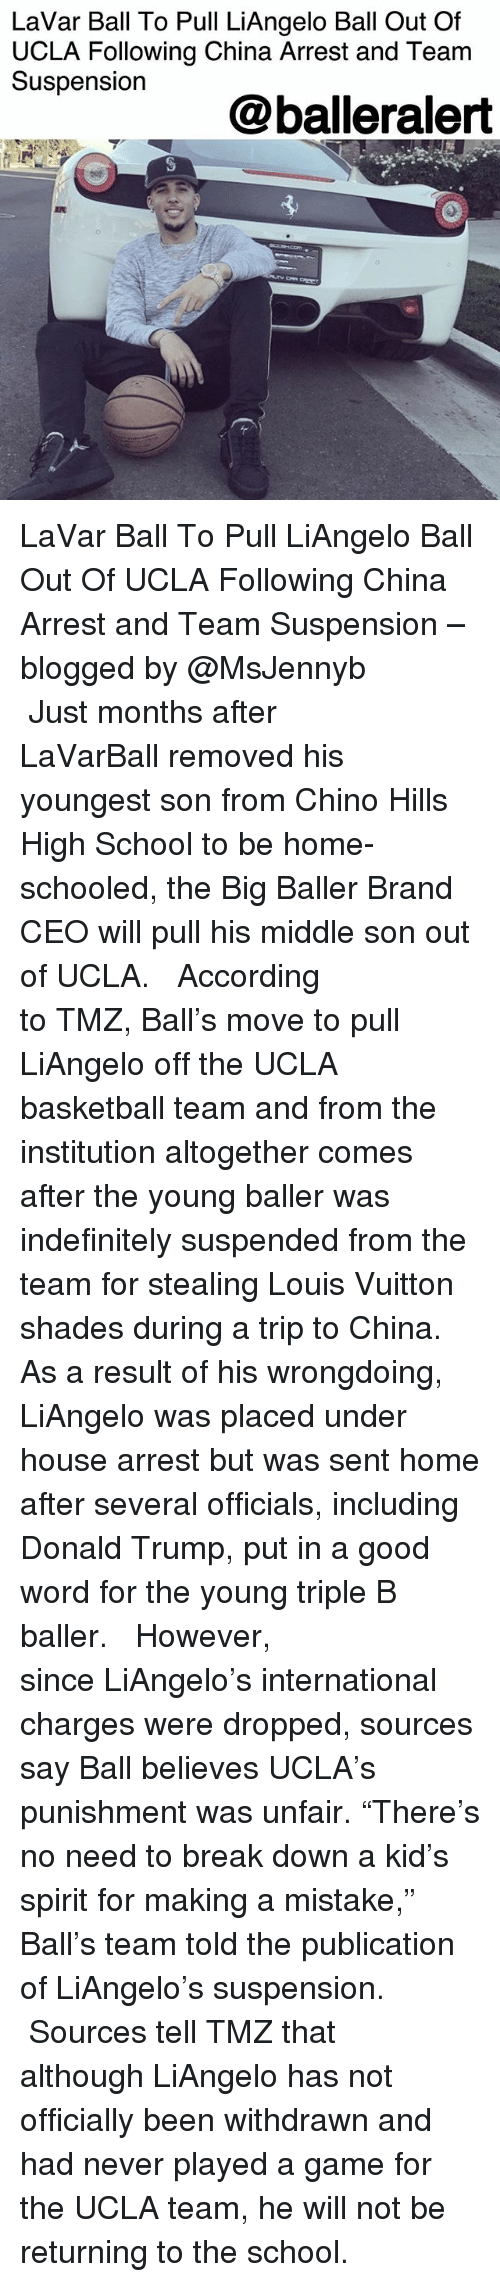 "Basketball, Donald Trump, and Memes: LaVar Ball To Pull LiAngelo Ball Out Of  UCLA Following China Arrest and Team  Suspension  @balleralert LaVar Ball To Pull LiAngelo Ball Out Of UCLA Following China Arrest and Team Suspension – blogged by @MsJennyb ⠀⠀⠀⠀⠀⠀⠀ ⠀⠀⠀⠀⠀⠀⠀ Just months after LaVarBall removed his youngest son from Chino Hills High School to be home-schooled, the Big Baller Brand CEO will pull his middle son out of UCLA. ⠀⠀⠀⠀⠀⠀⠀ ⠀⠀⠀⠀⠀⠀⠀ According to TMZ, Ball's move to pull LiAngelo off the UCLA basketball team and from the institution altogether comes after the young baller was indefinitely suspended from the team for stealing Louis Vuitton shades during a trip to China. As a result of his wrongdoing, LiAngelo was placed under house arrest but was sent home after several officials, including Donald Trump, put in a good word for the young triple B baller. ⠀⠀⠀⠀⠀⠀⠀ ⠀⠀⠀⠀⠀⠀⠀ However, since LiAngelo's international charges were dropped, sources say Ball believes UCLA's punishment was unfair. ""There's no need to break down a kid's spirit for making a mistake,"" Ball's team told the publication of LiAngelo's suspension. ⠀⠀⠀⠀⠀⠀⠀ ⠀⠀⠀⠀⠀⠀⠀ Sources tell TMZ that although LiAngelo has not officially been withdrawn and had never played a game for the UCLA team, he will not be returning to the school."